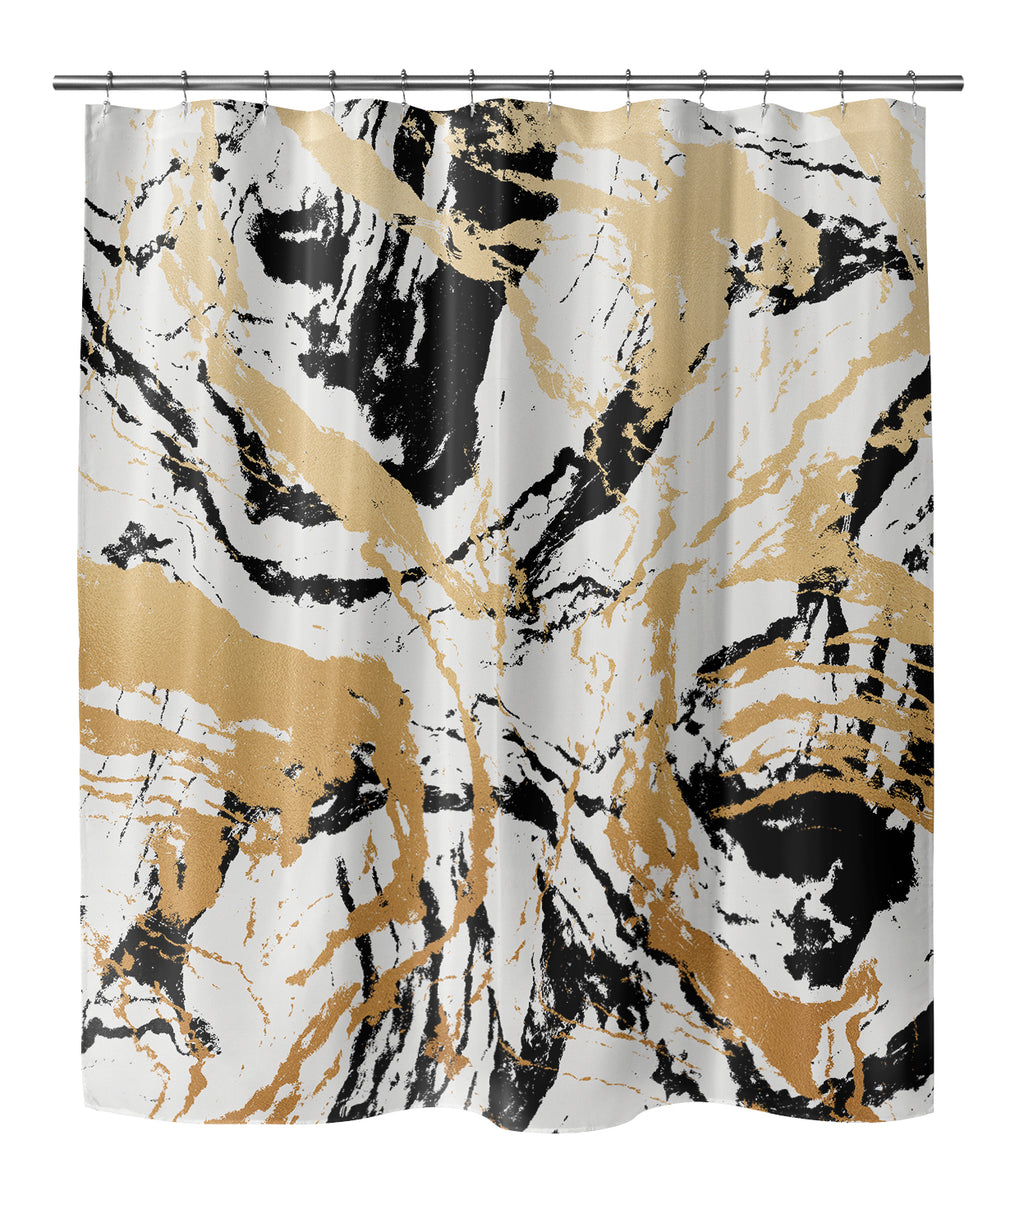 MARBLE Shower Curtain By Marina Gutierrez